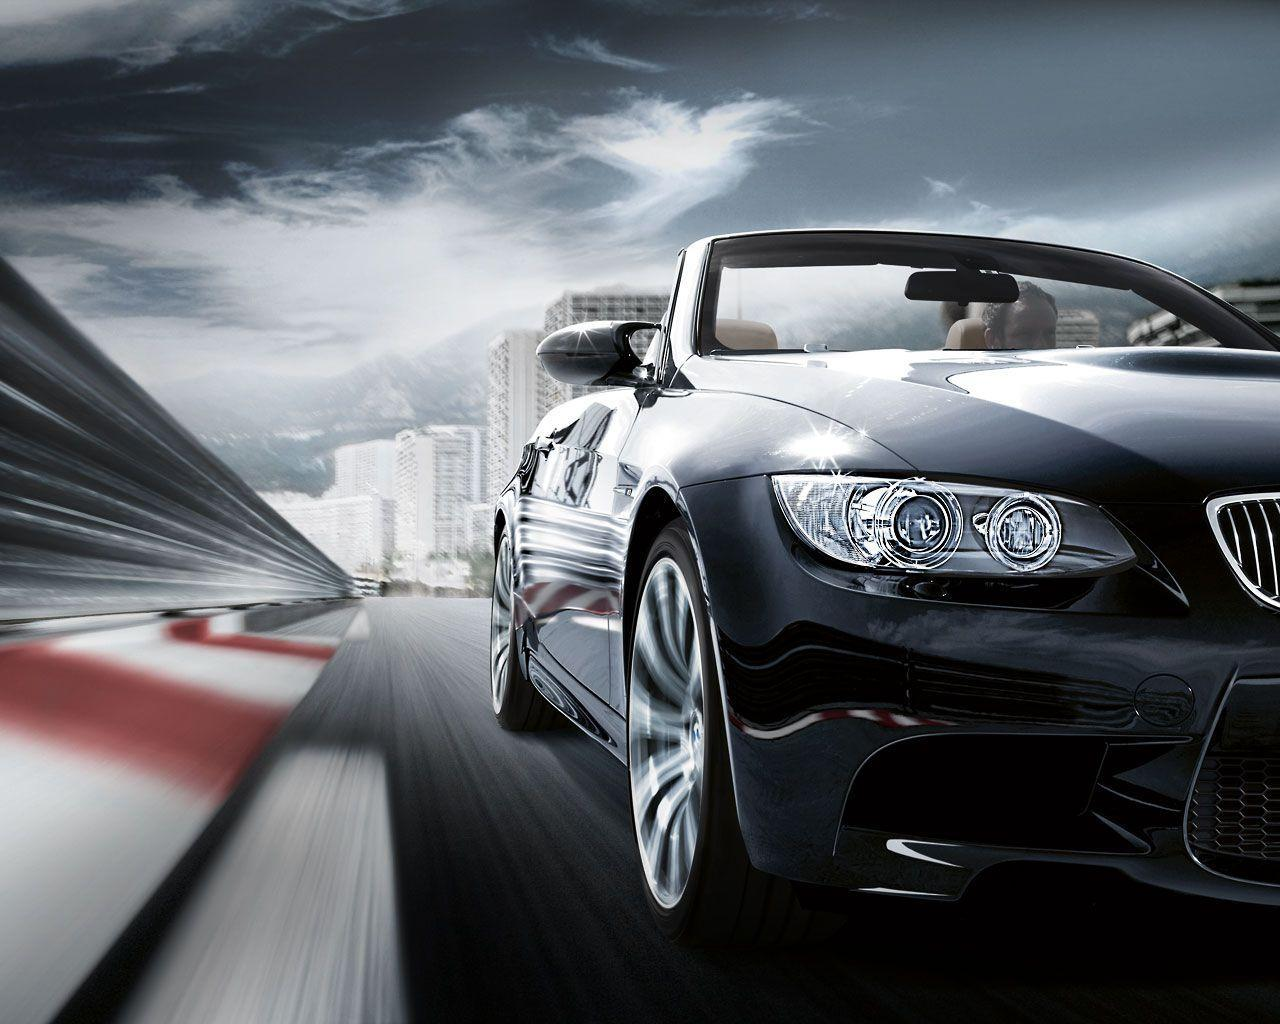 Bmw M3 Wallpapers - WallpaperSafari